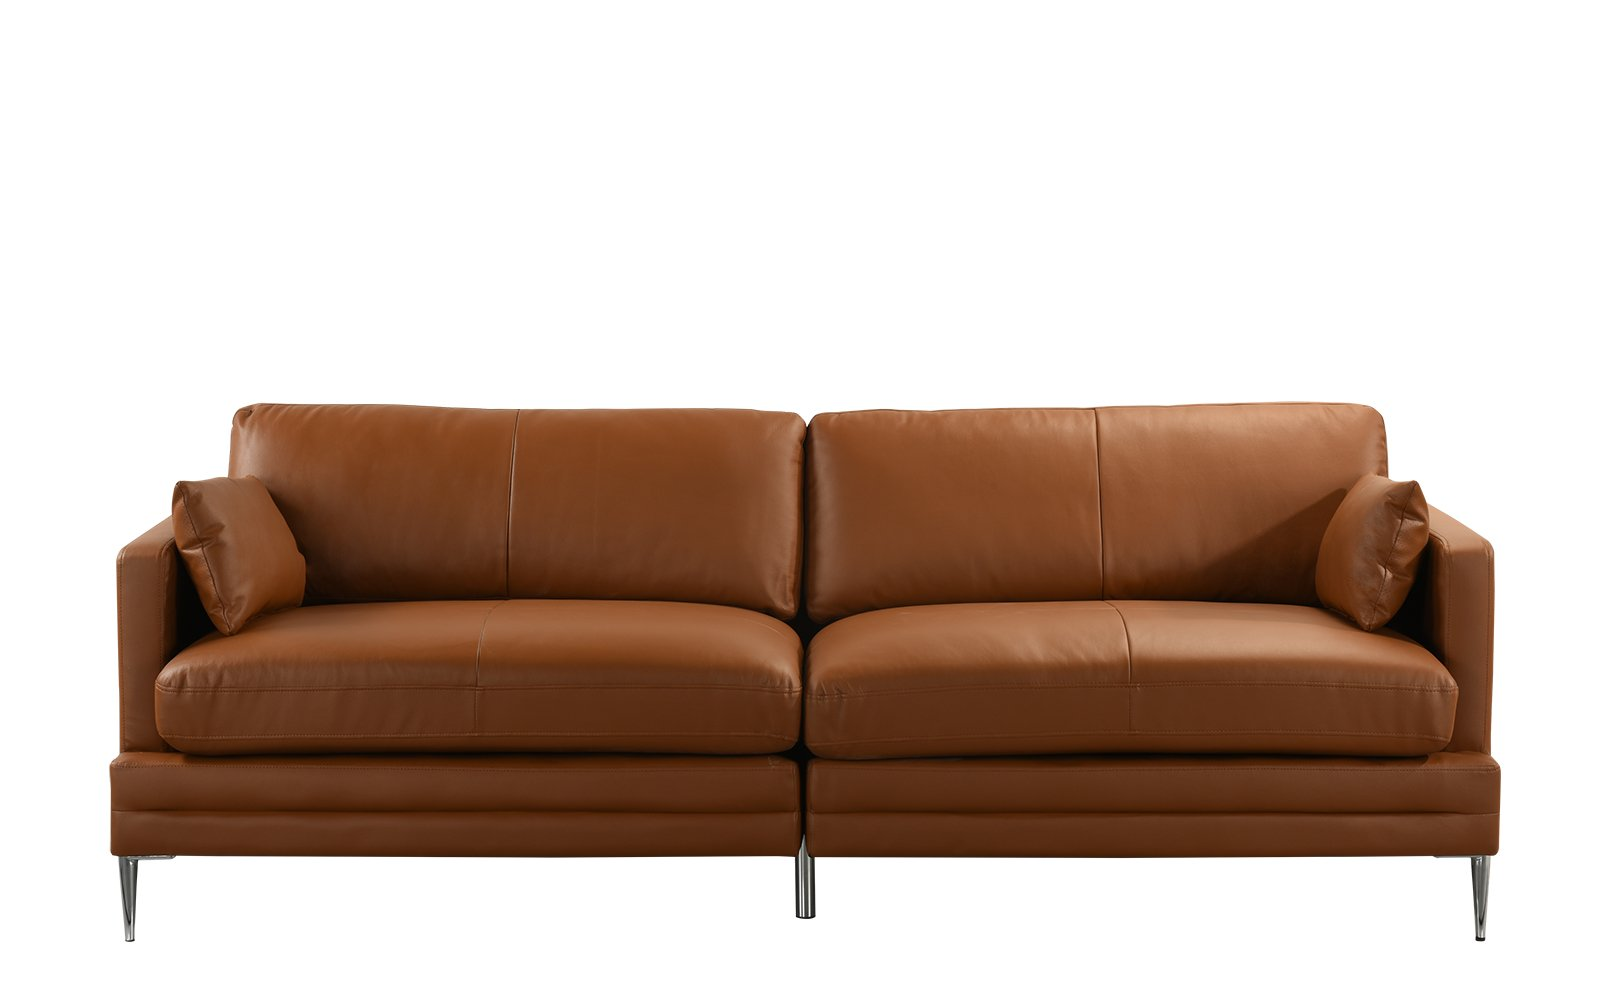 Details About Light Brown Mid Century Modern Sofa Leather Match Fabric Living Room Couch